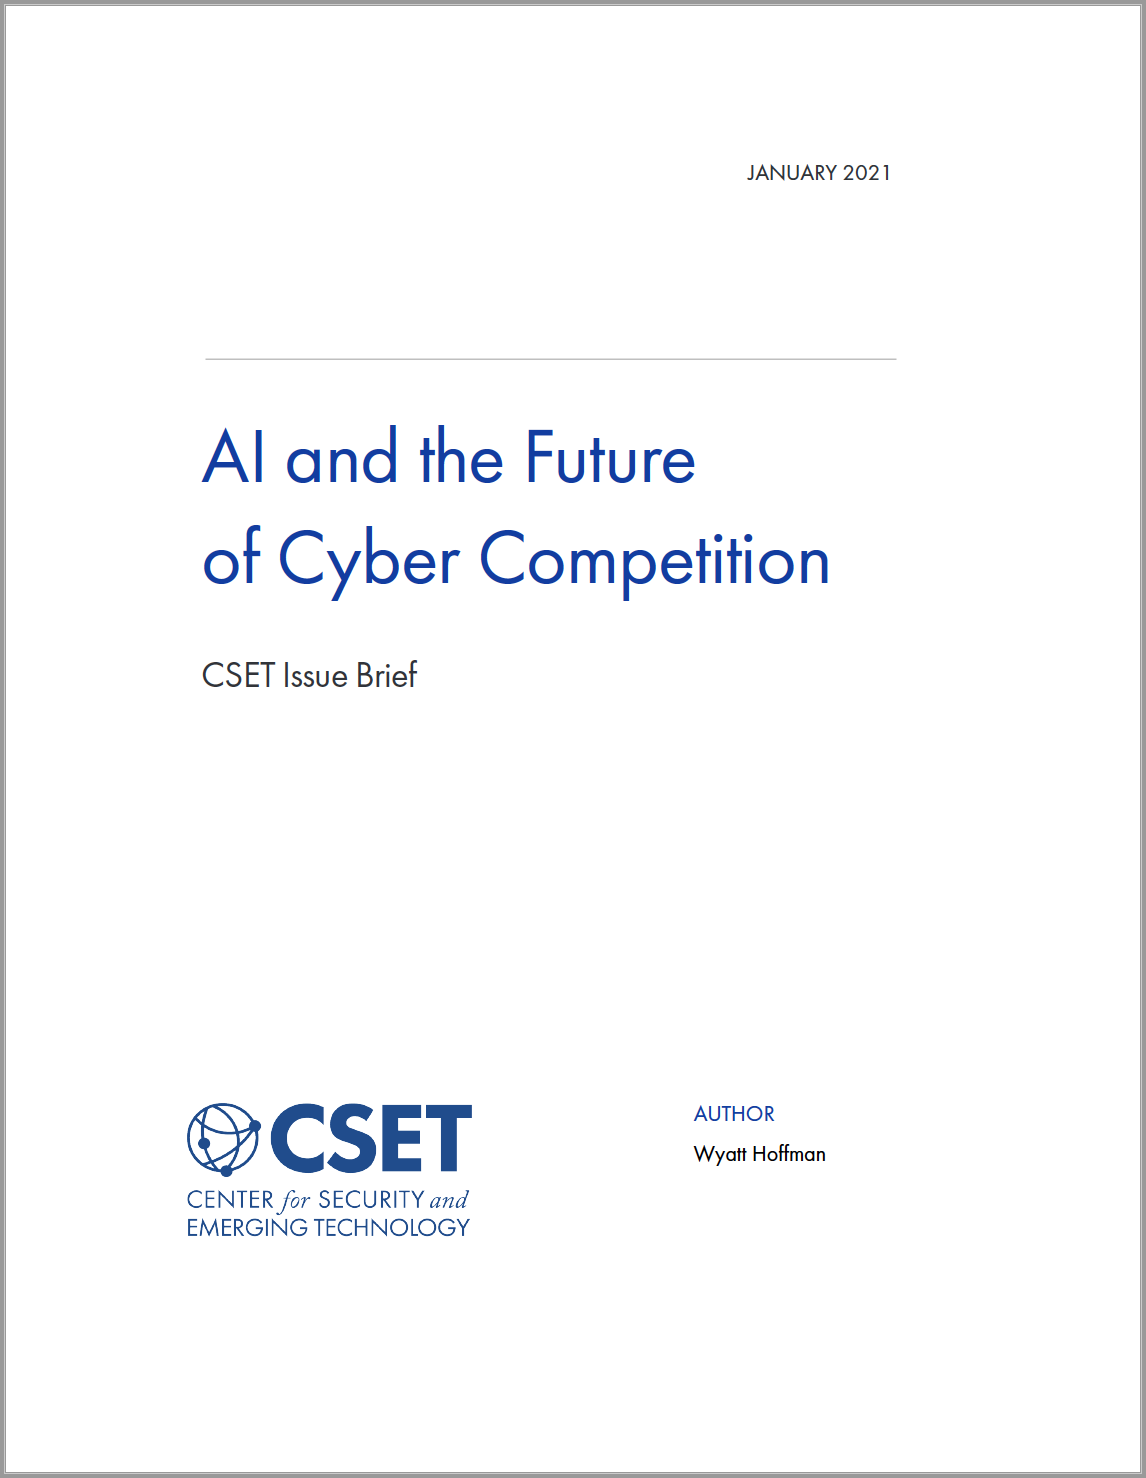 AI and the Future of Cyber Competition Image